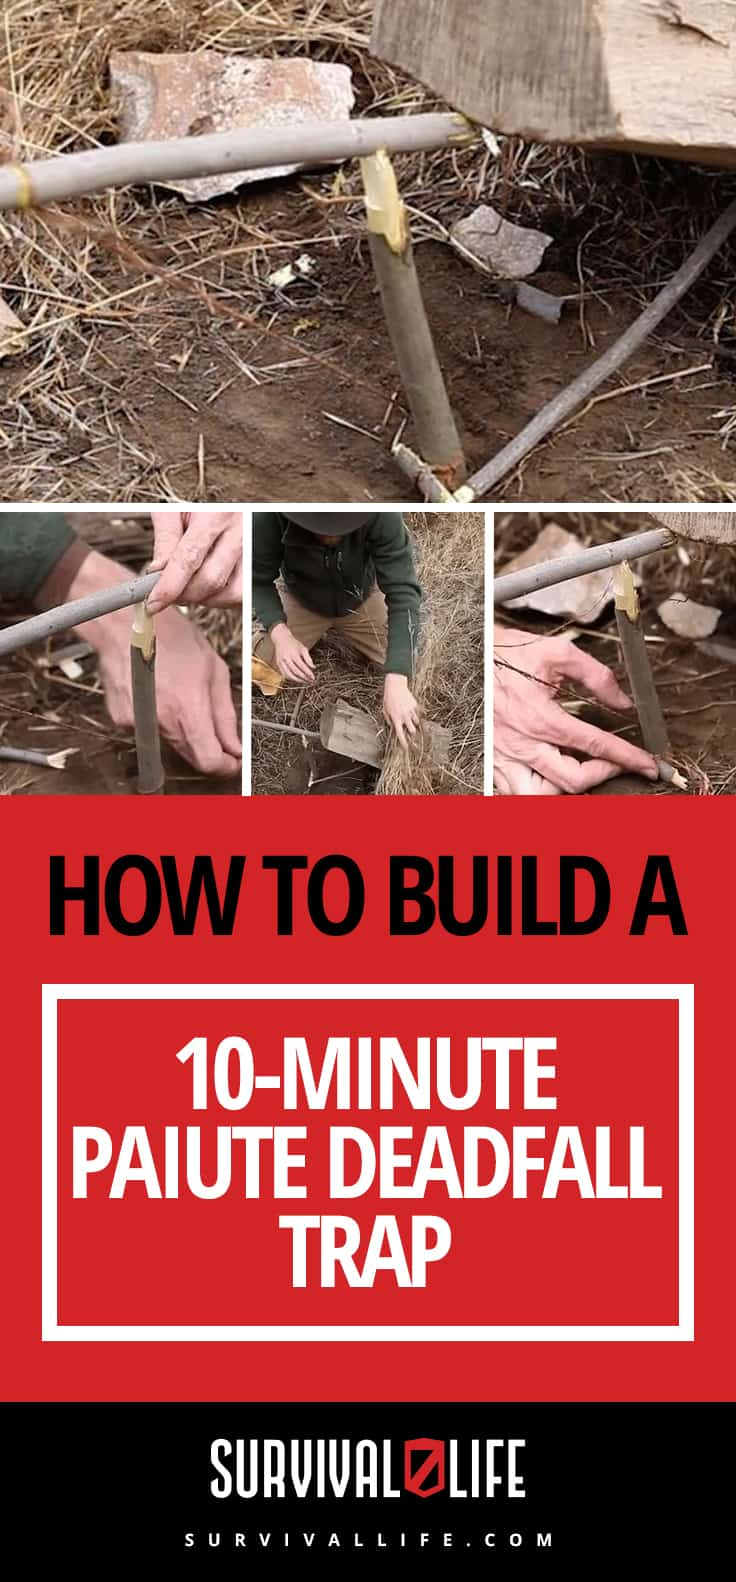 How To Build a 10-Minute Paiute Deadfall Trap